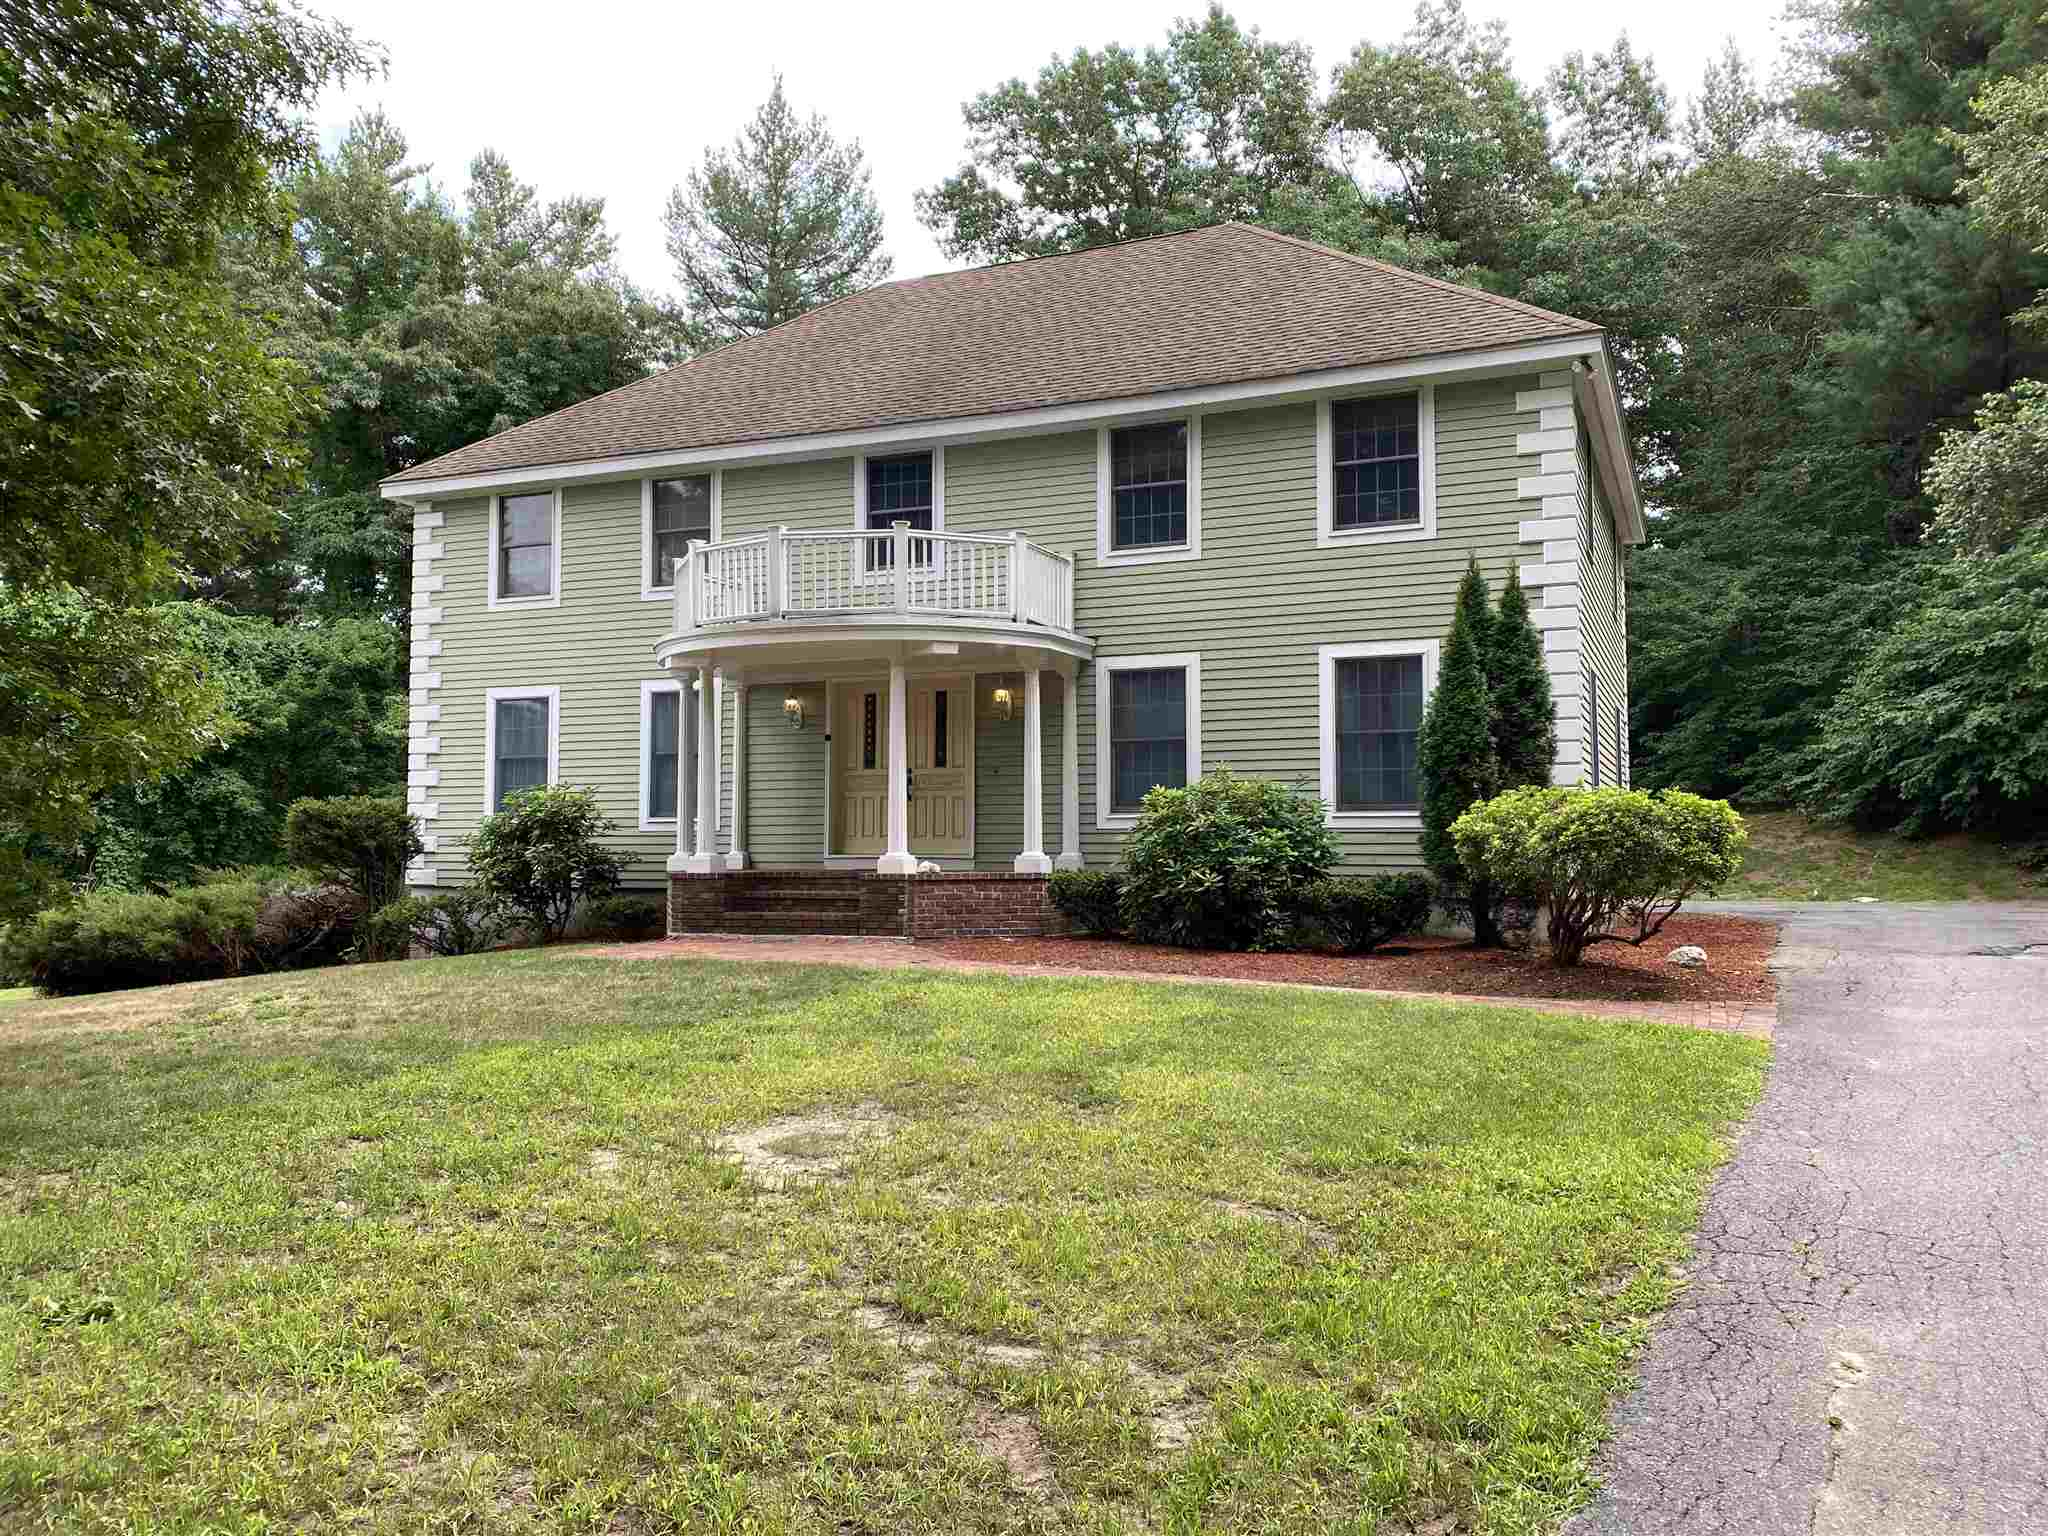 Photo of 29 E Nashua Road Windham NH 03087